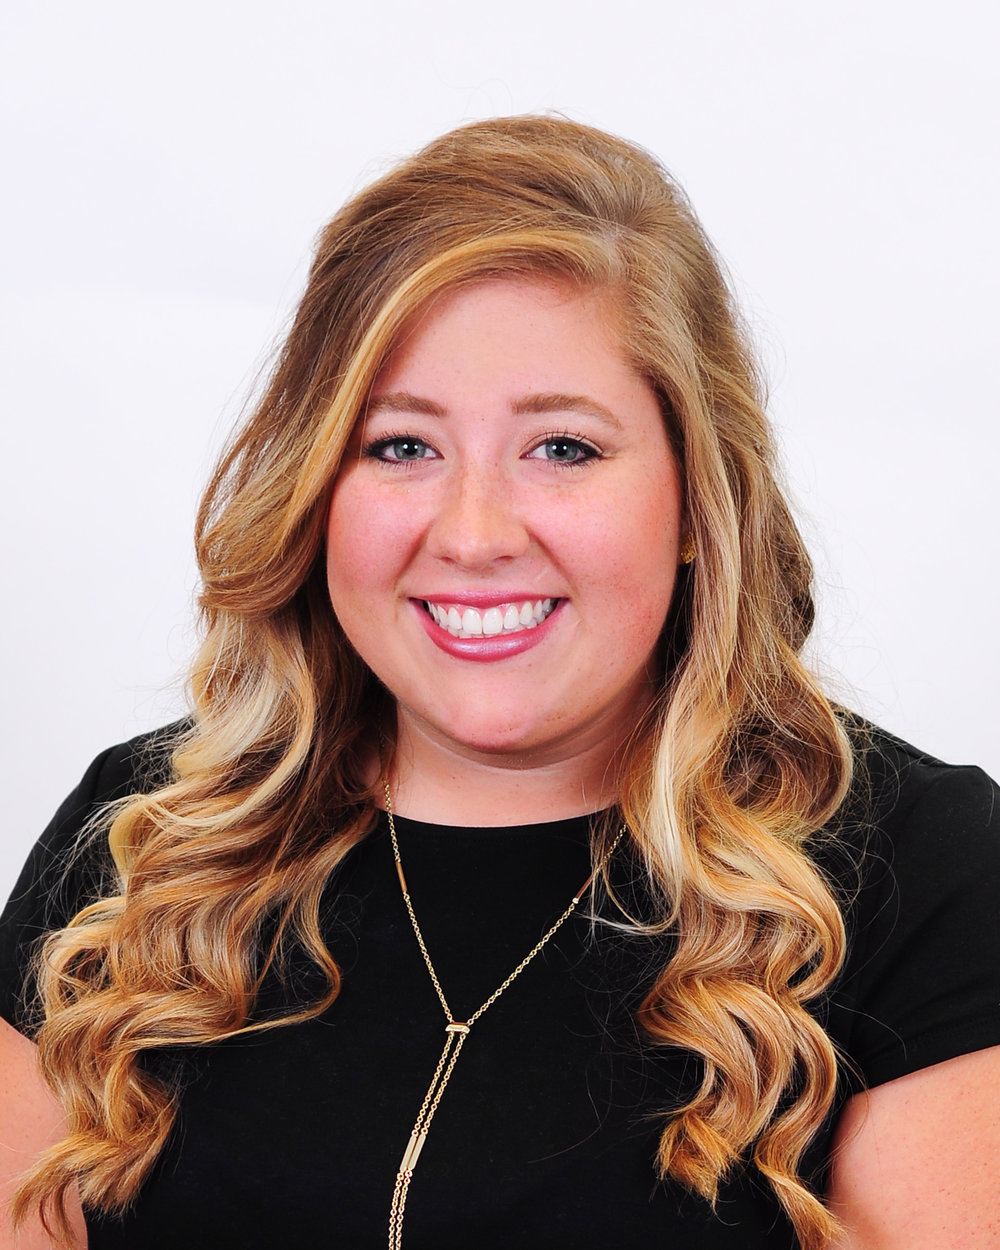 Allie Kella Regional Operations Associate